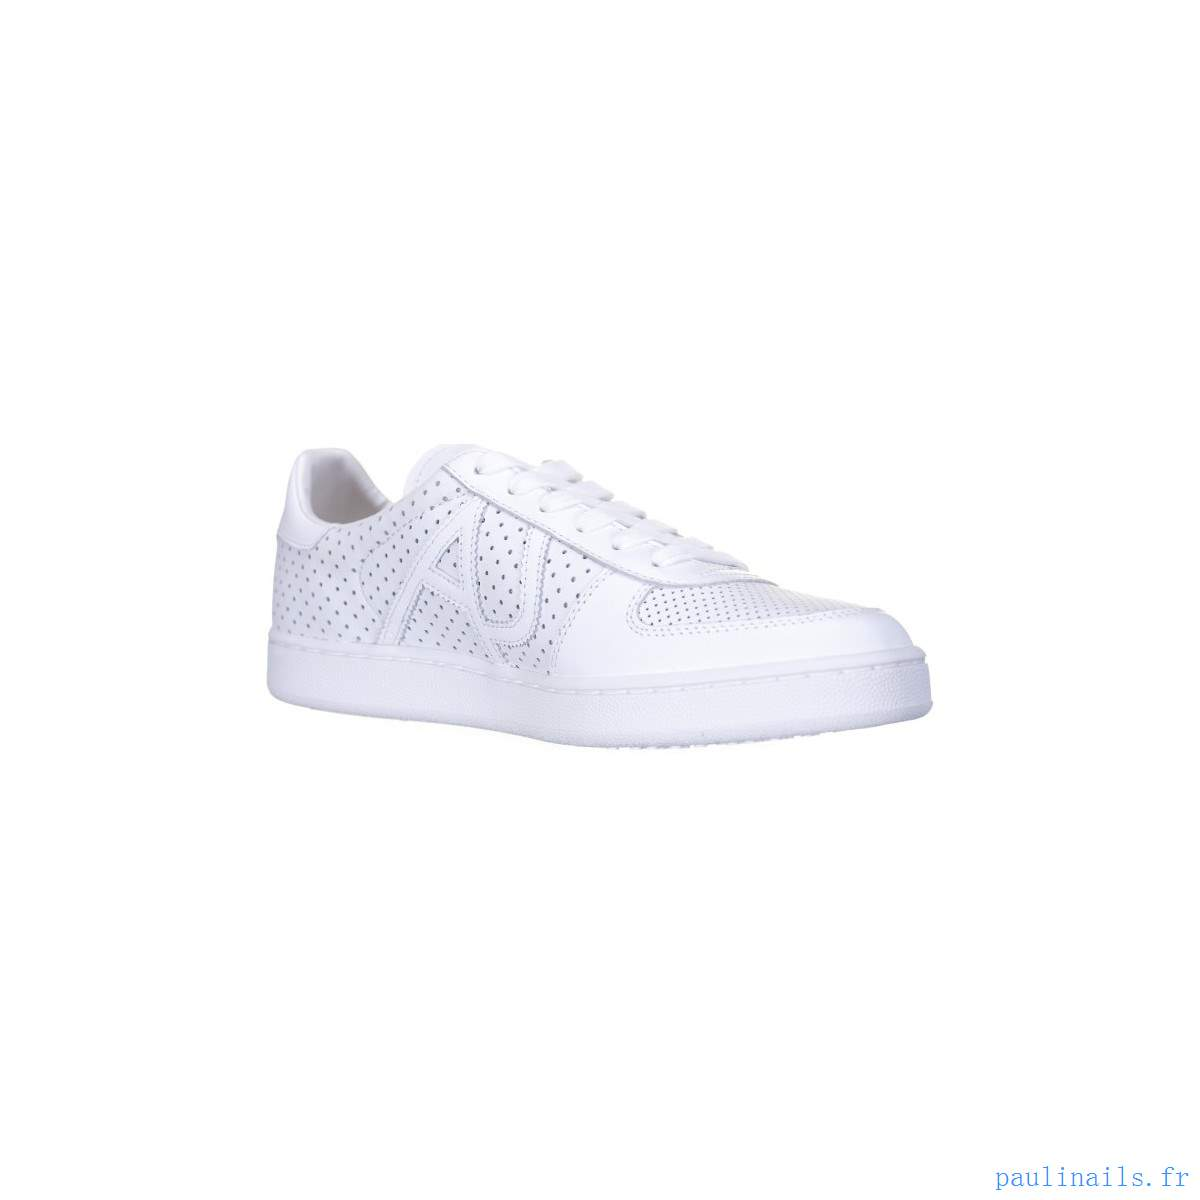 e48570d5d5b Chaussures Emporio Armani blanches Casual Chaussures Tommy Hilfiger Casual  SYYAN Femmes Strass Open Toe Talons Hauts